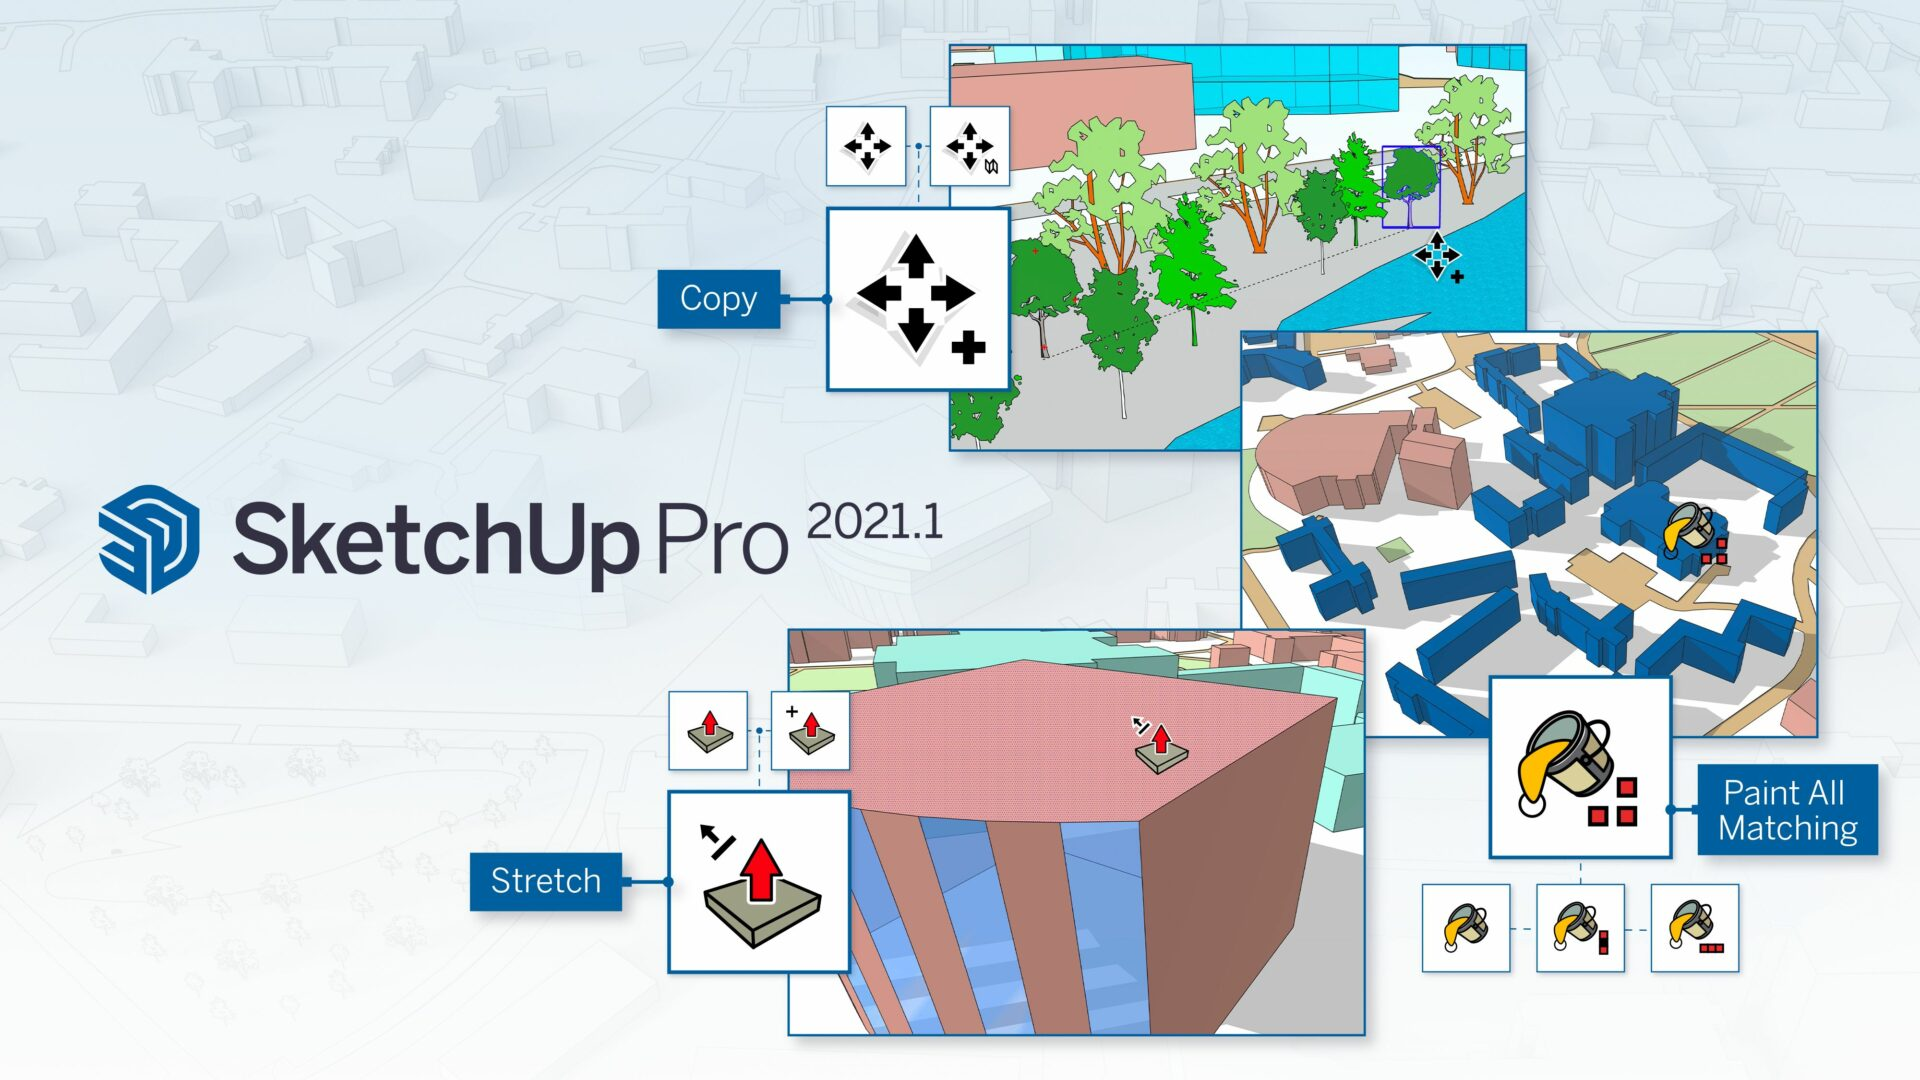 New updates in SketchUp Pro 2021 (release 2021.1)